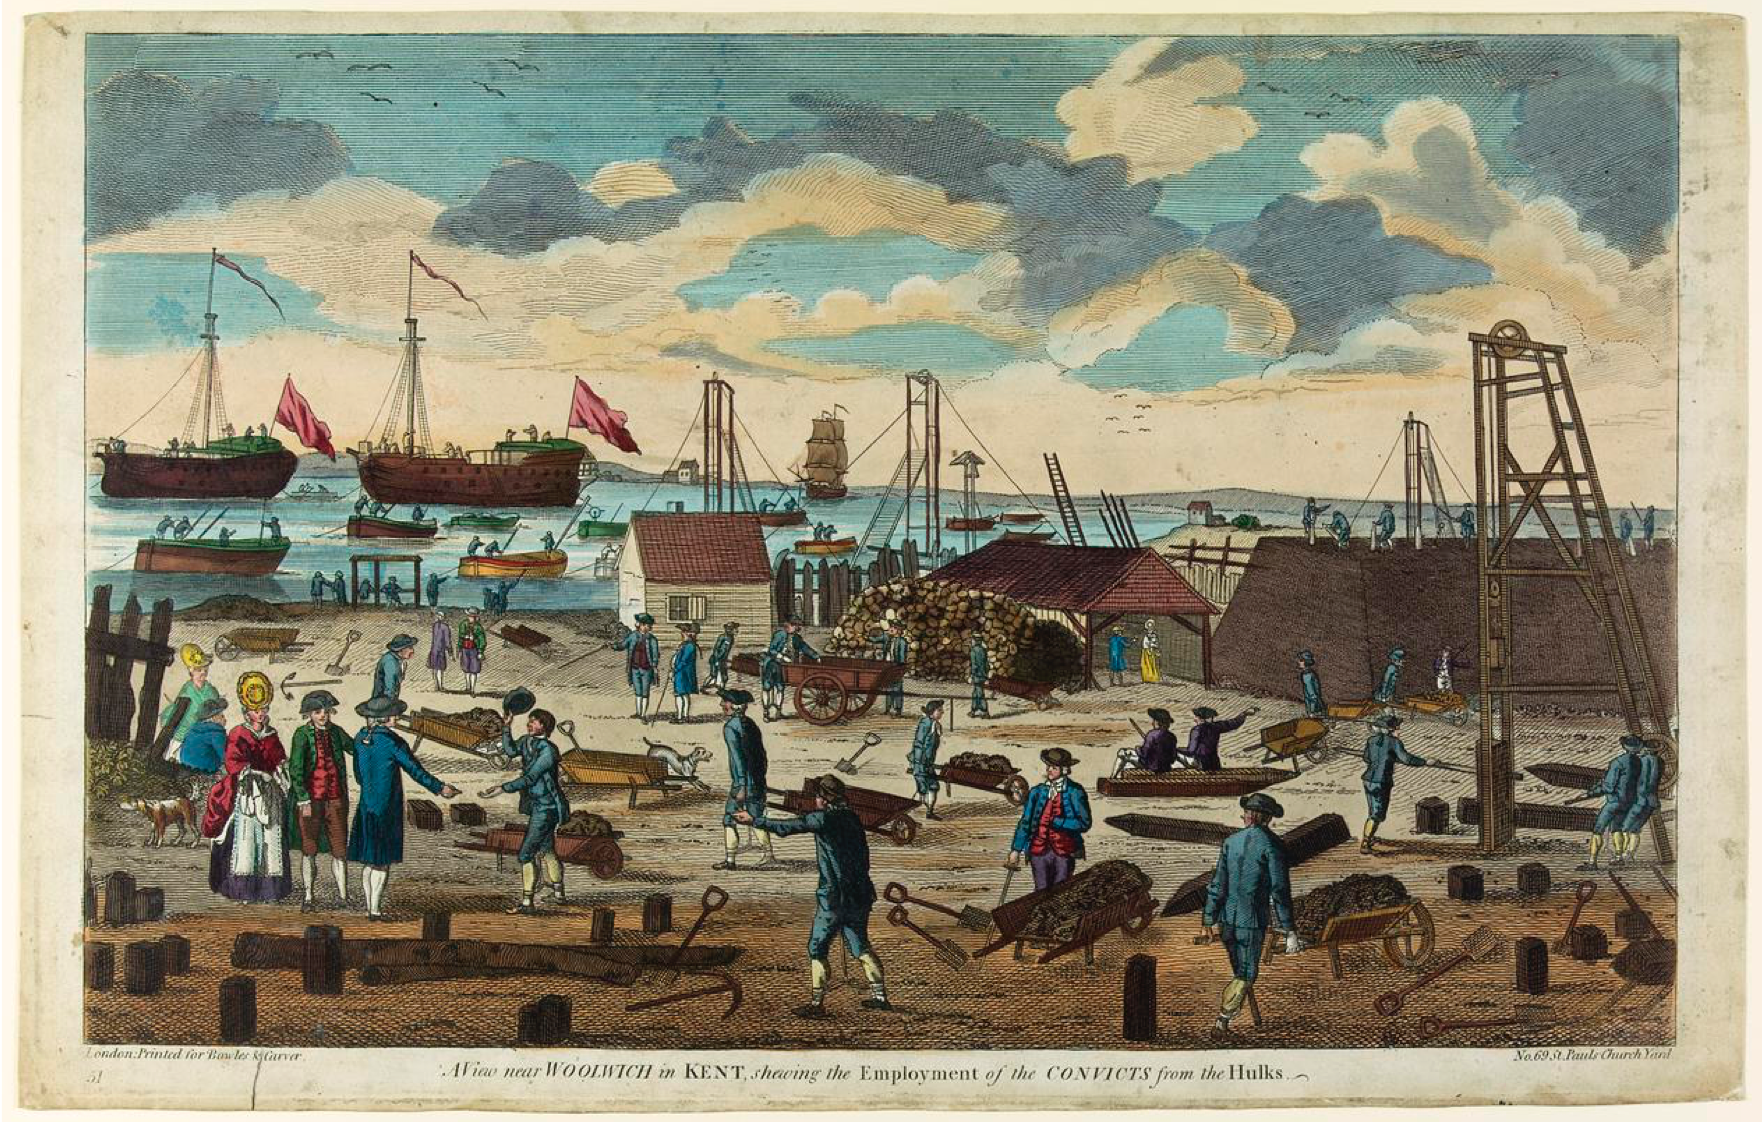 Prison Hulk, Convicts, working, labourers, prisoners, The Warren, The Thames, Woolwich, Kent, England, Hulks, St. John's Cemetery Project, Old Parramatta, Benjamin Ratty, James Ratty